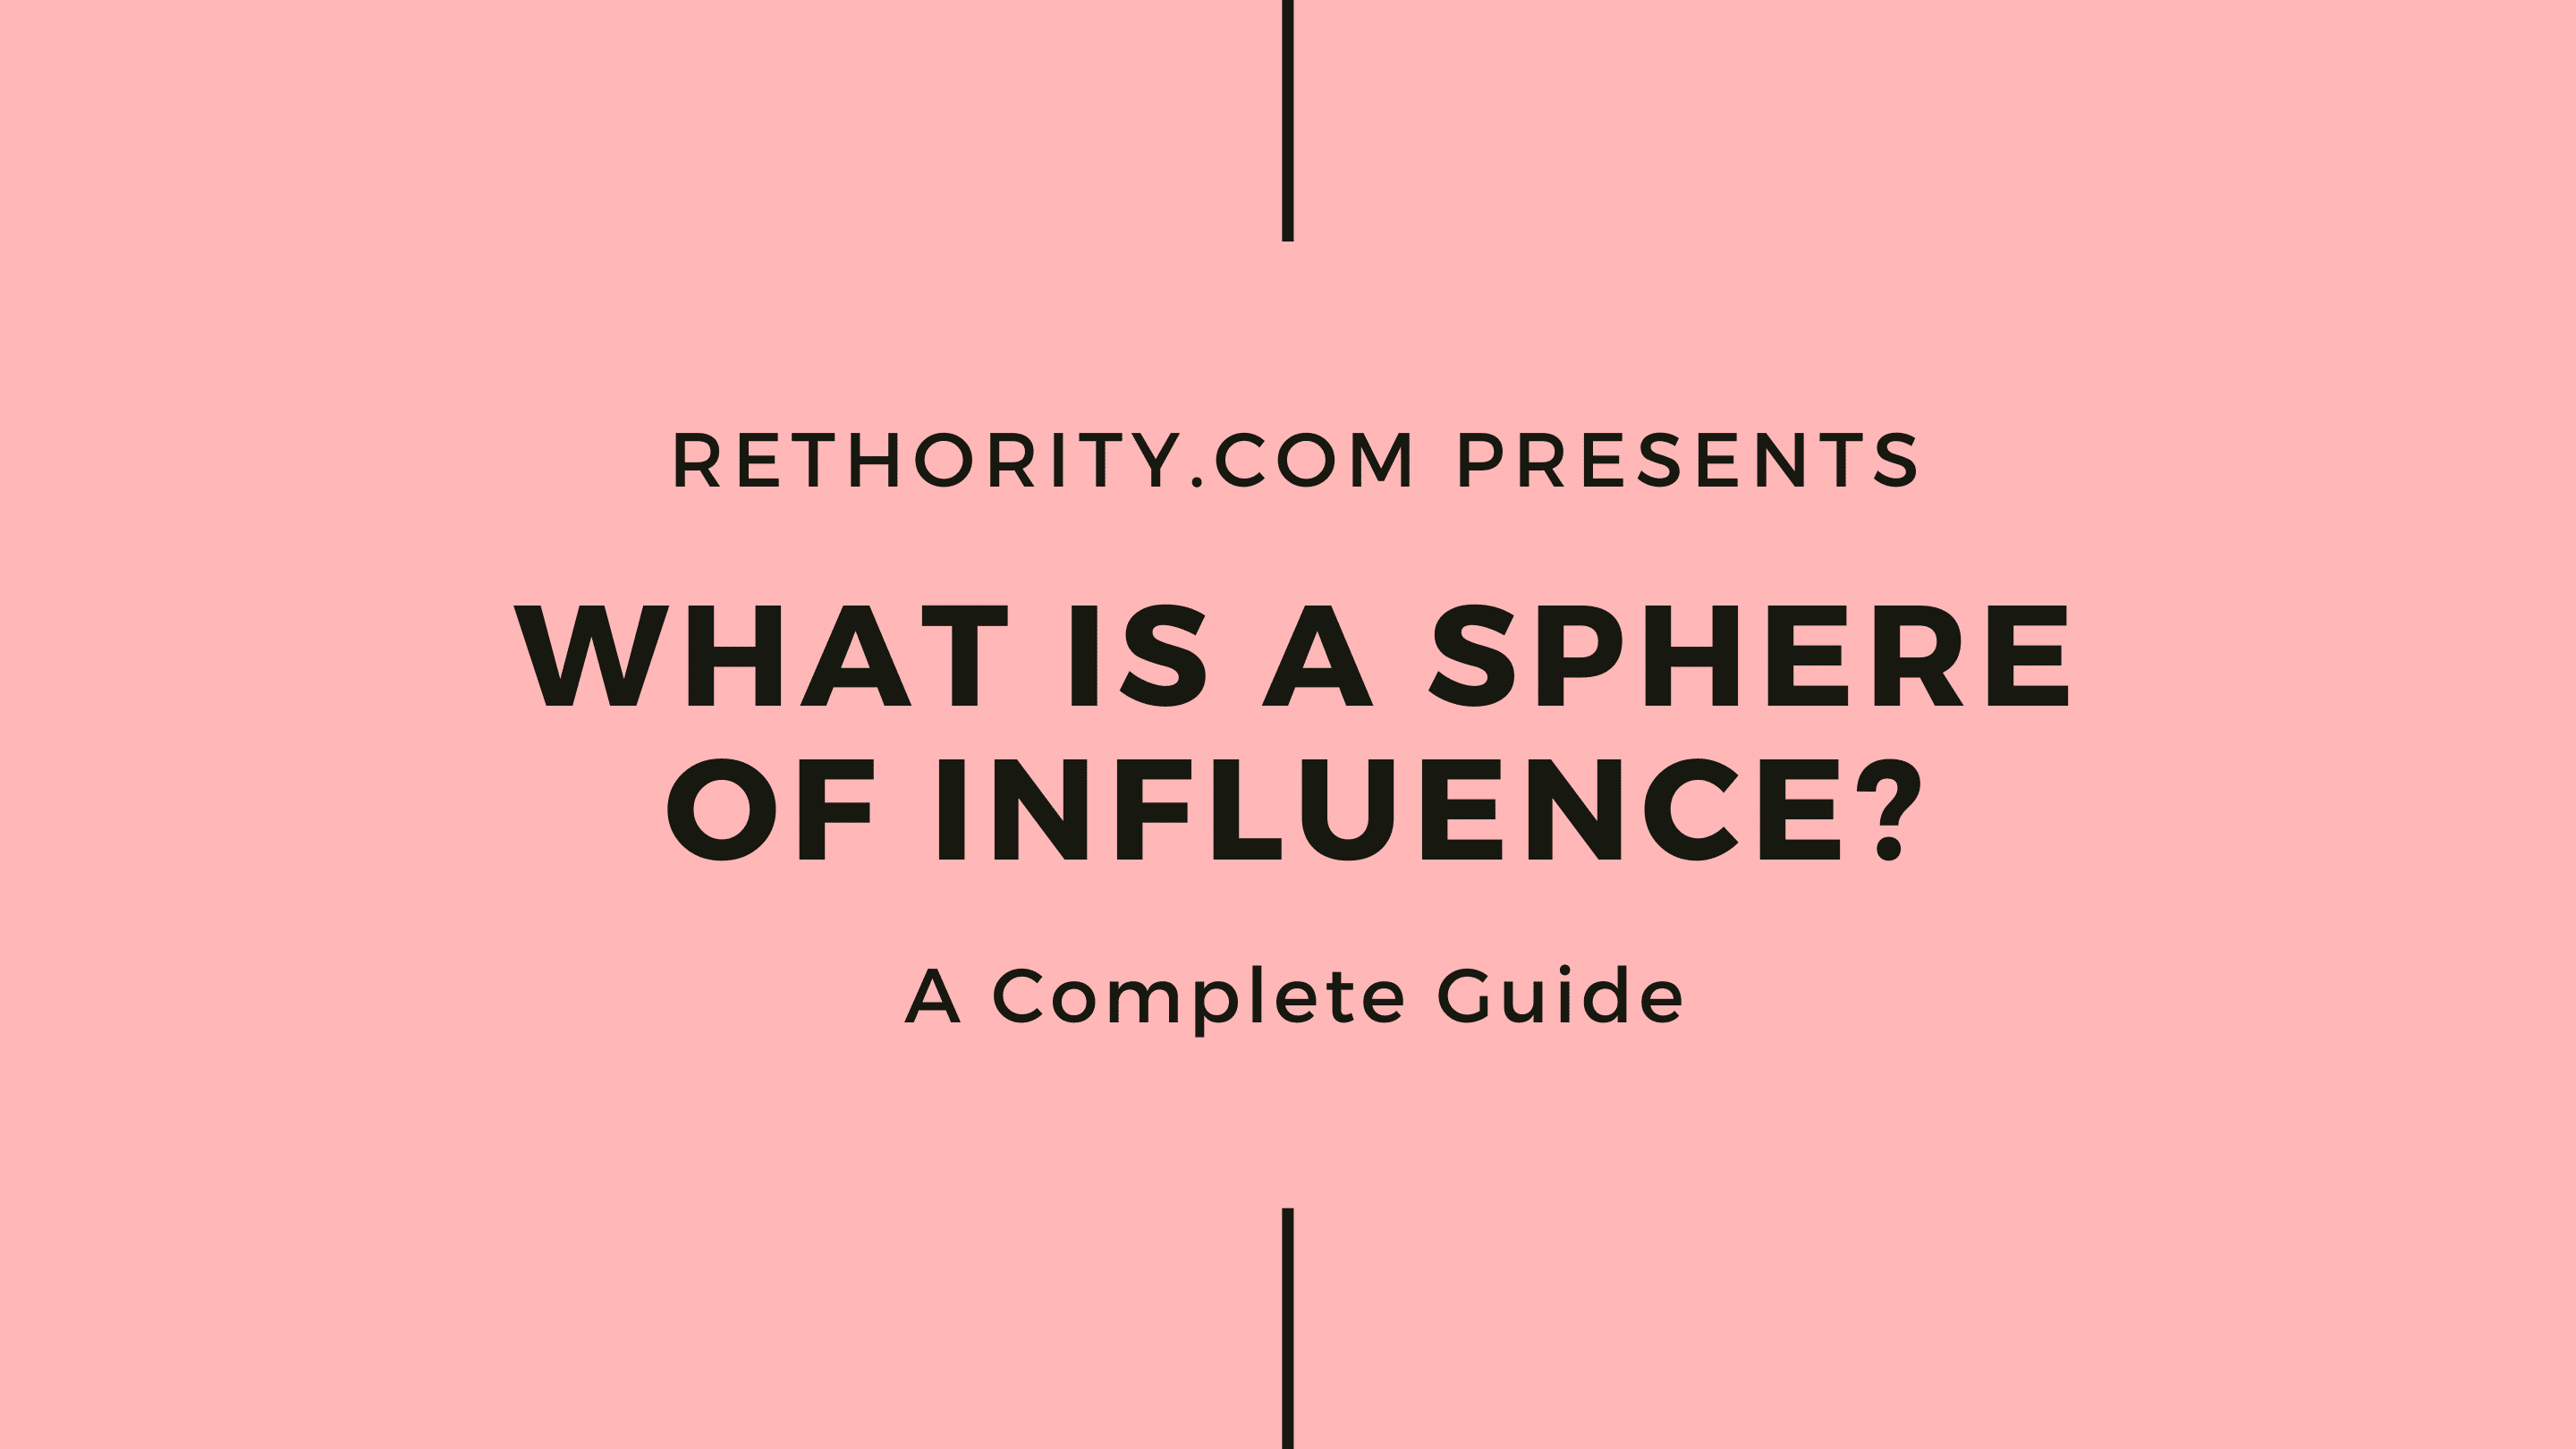 What Is a Sphere of Influence graphic with the words rethority presents and a complete guide before and after